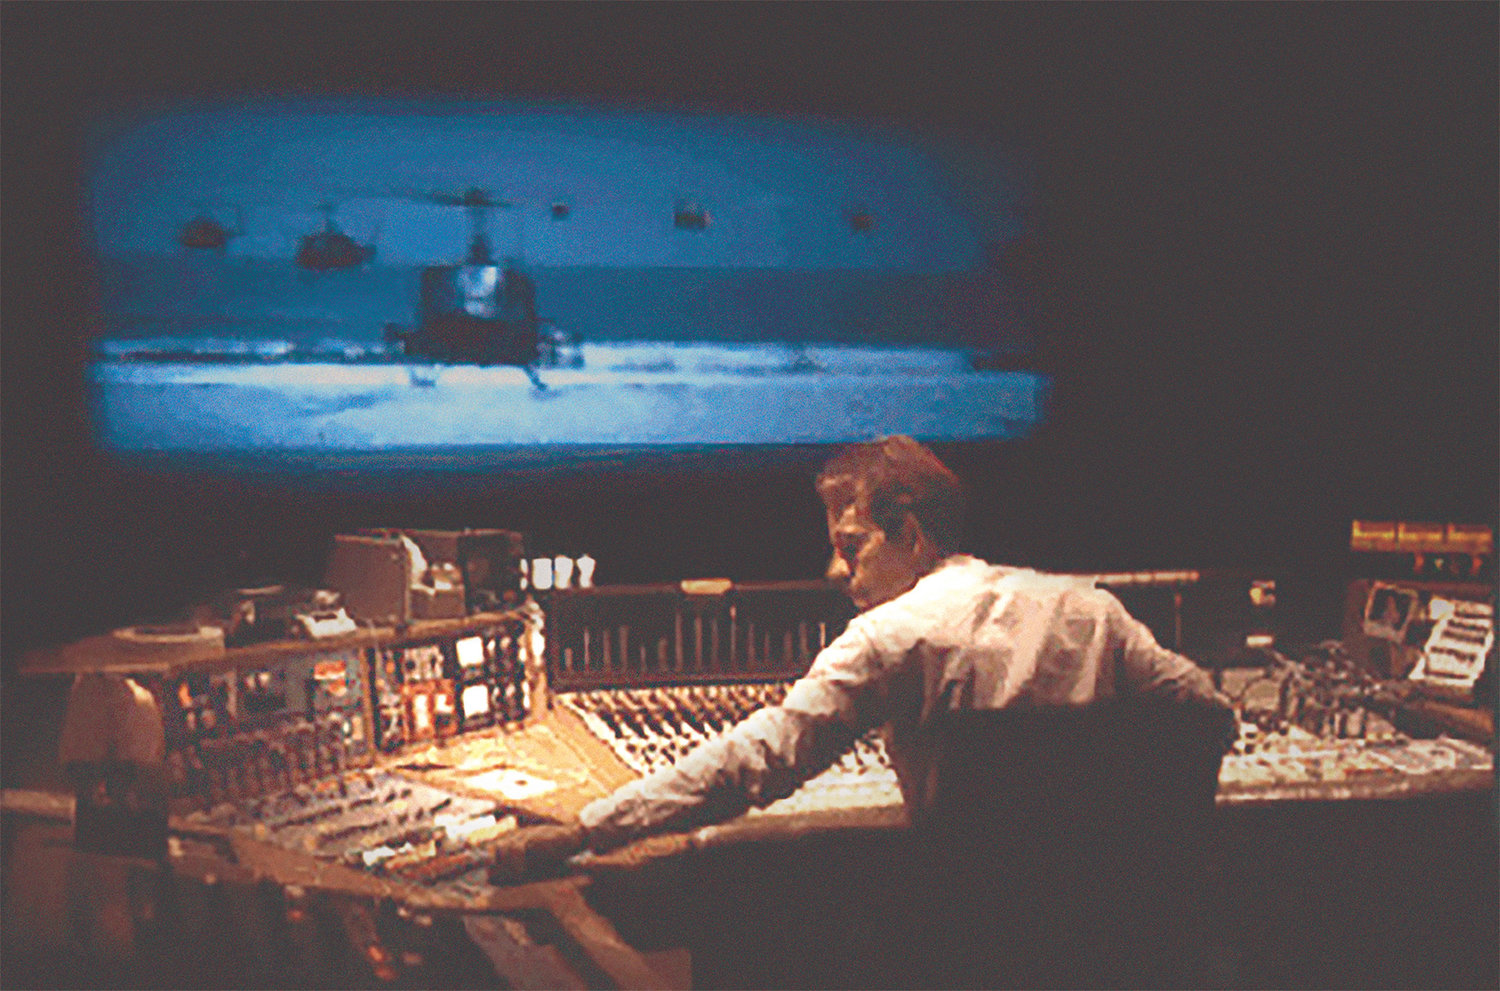 Walter Murch re-recording mixing Apocalypse Now 1979. (W.S. Murch/Tribeca Film Festival/TNS)